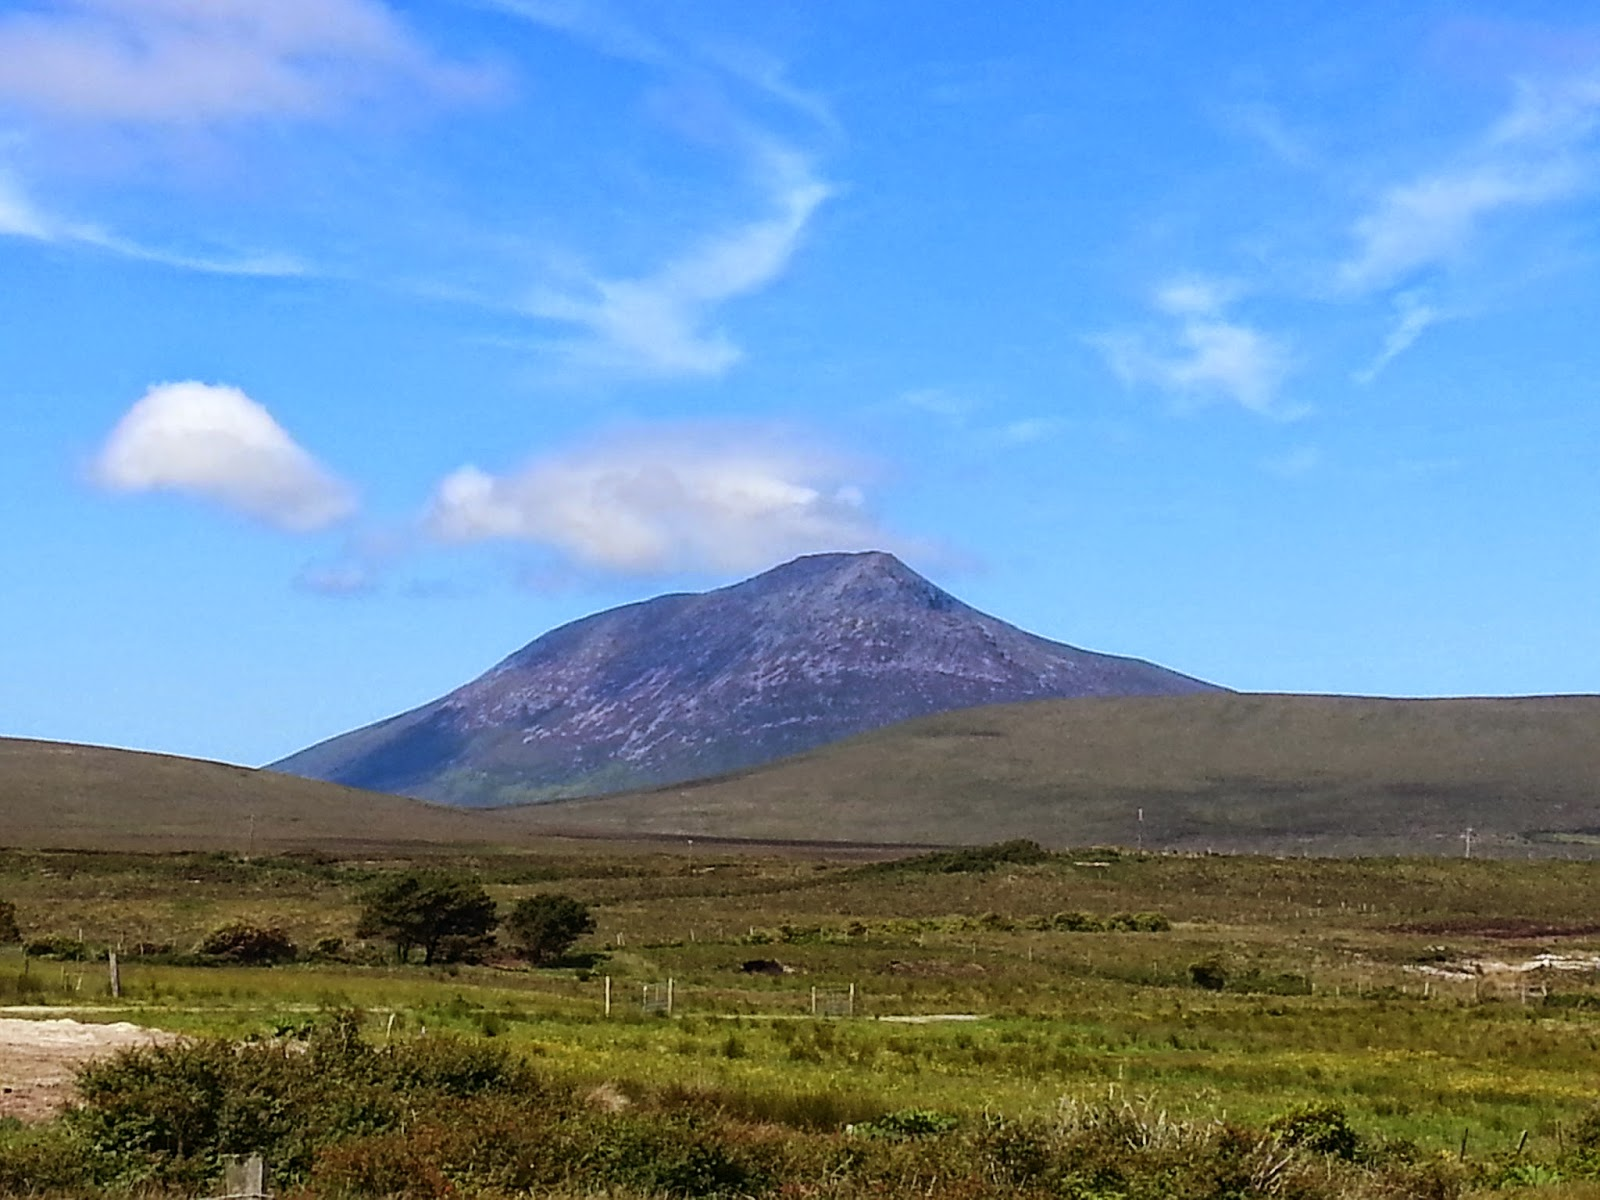 Volcano shaped slievemore mountain on achill island in ireland set against beautiful clear blue sky